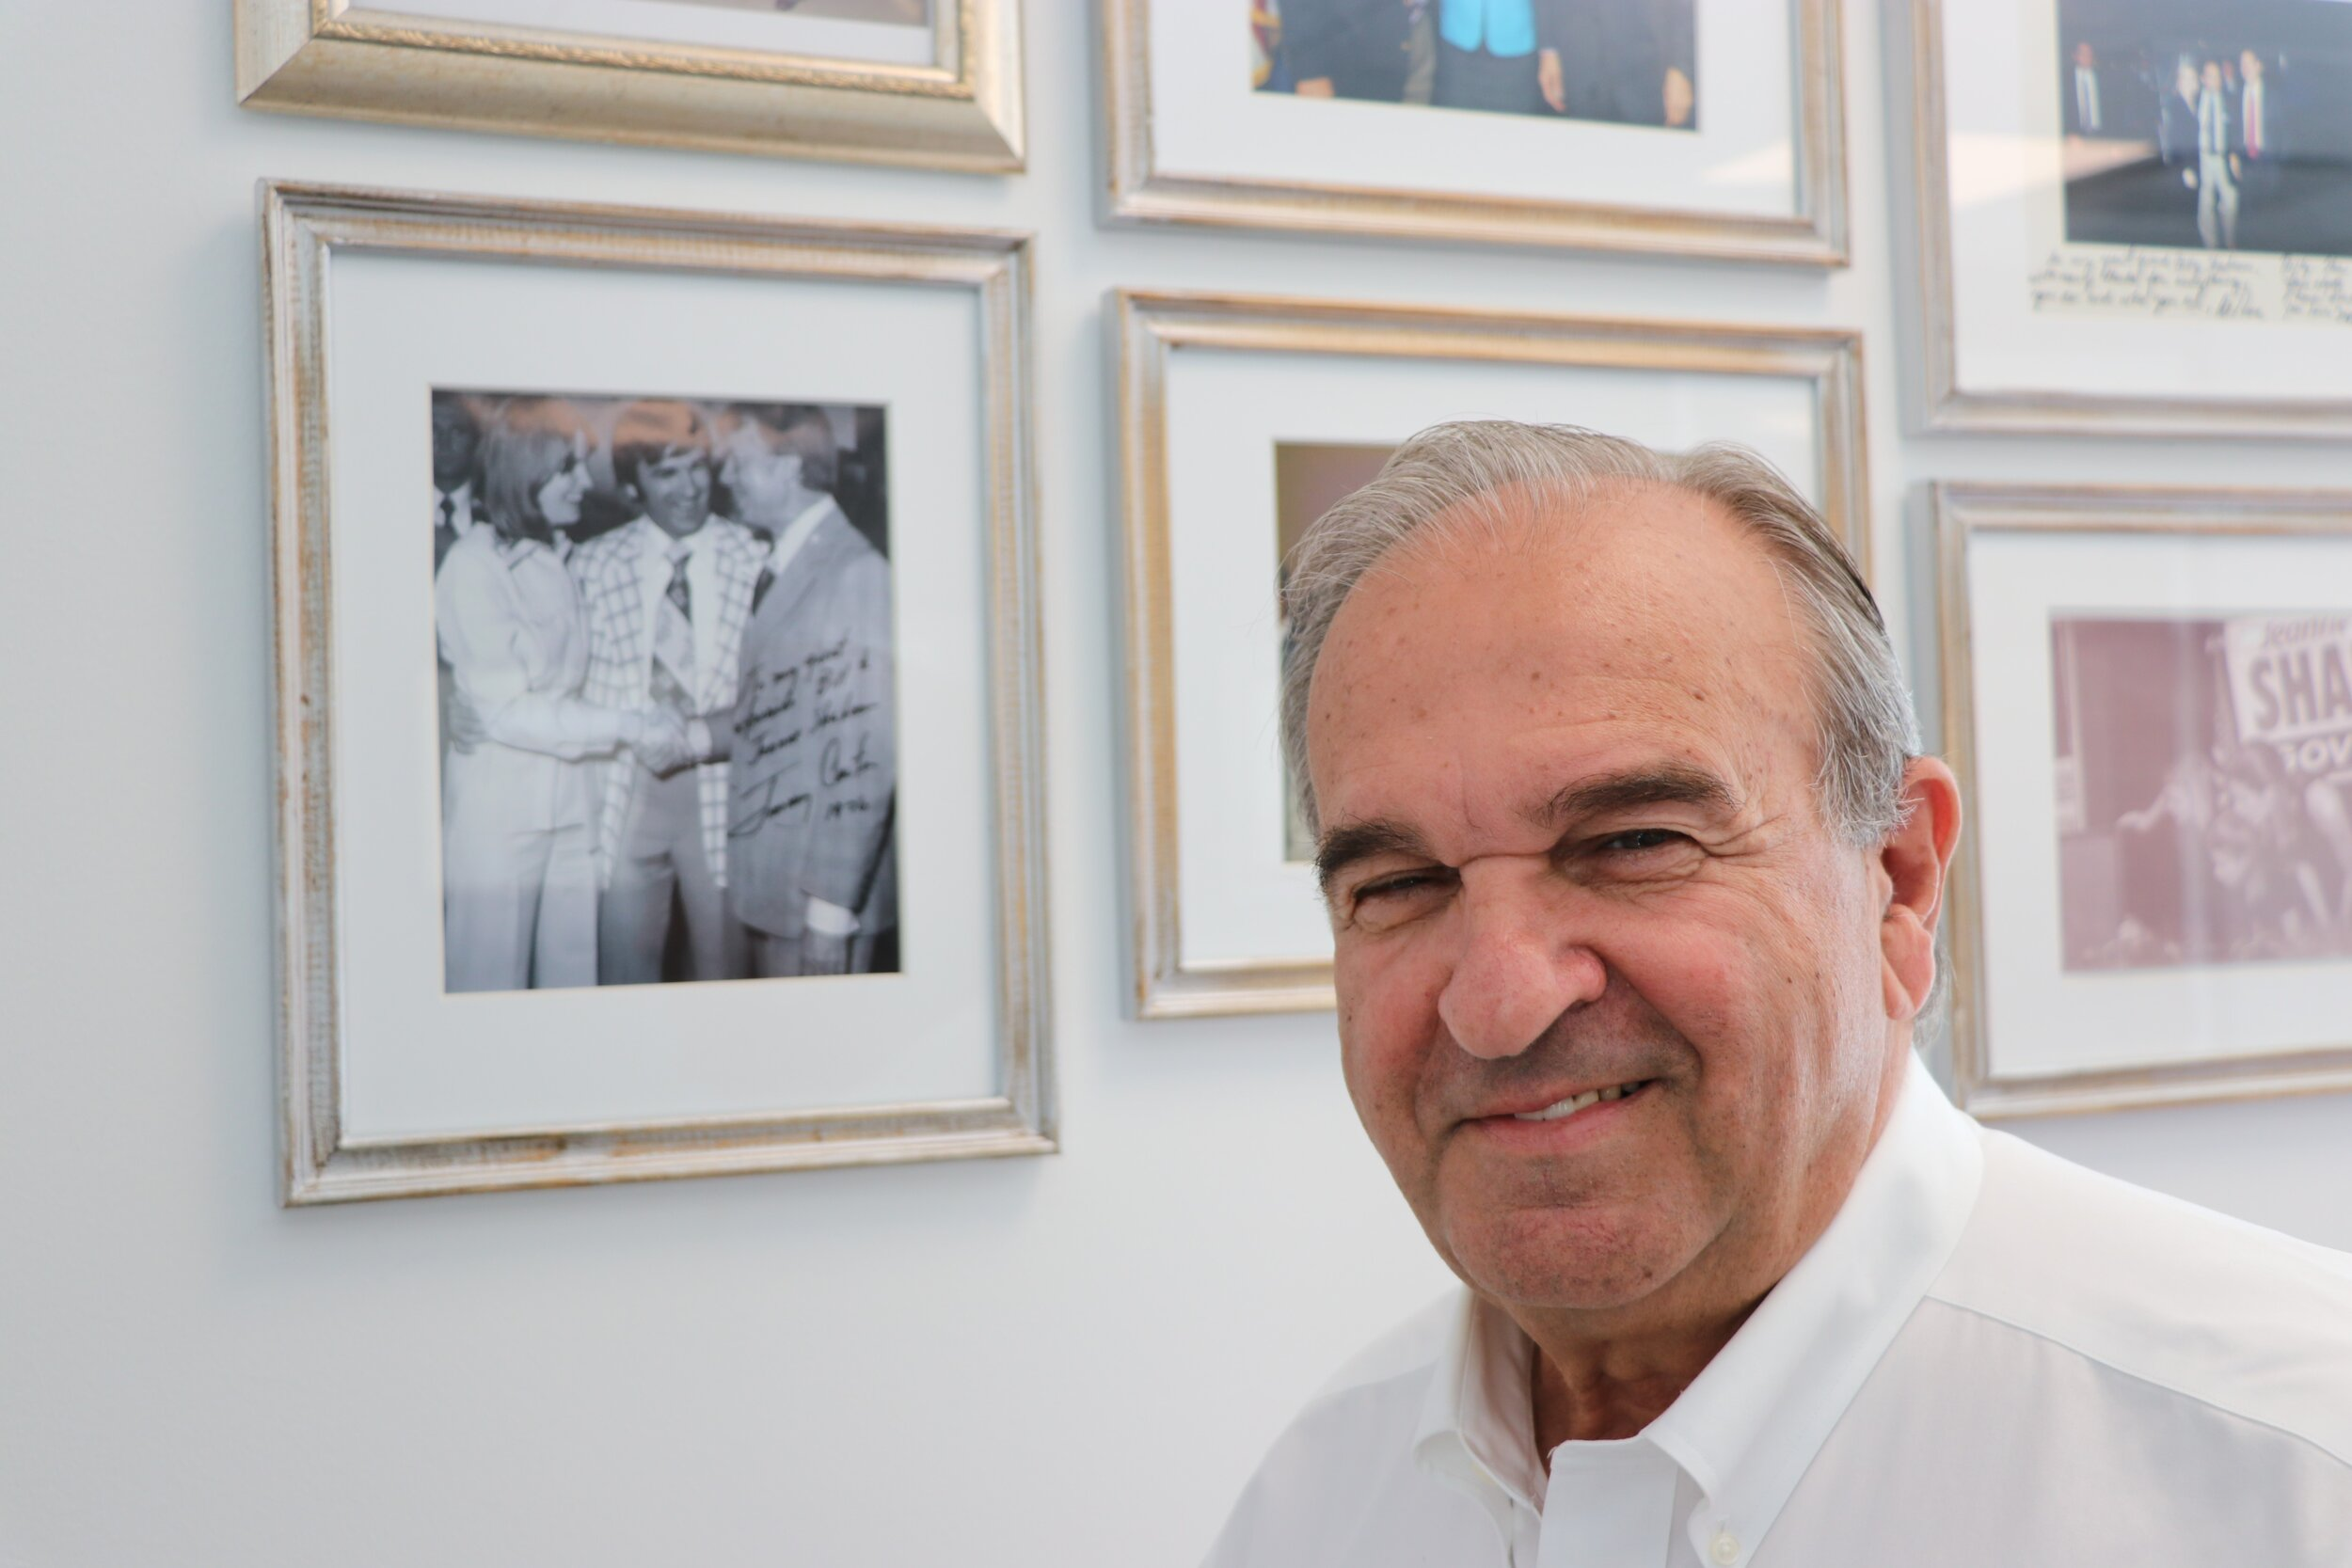 Billy Shaheen poses in front of his primary wall of fame. Photos by Dan Tuohy.